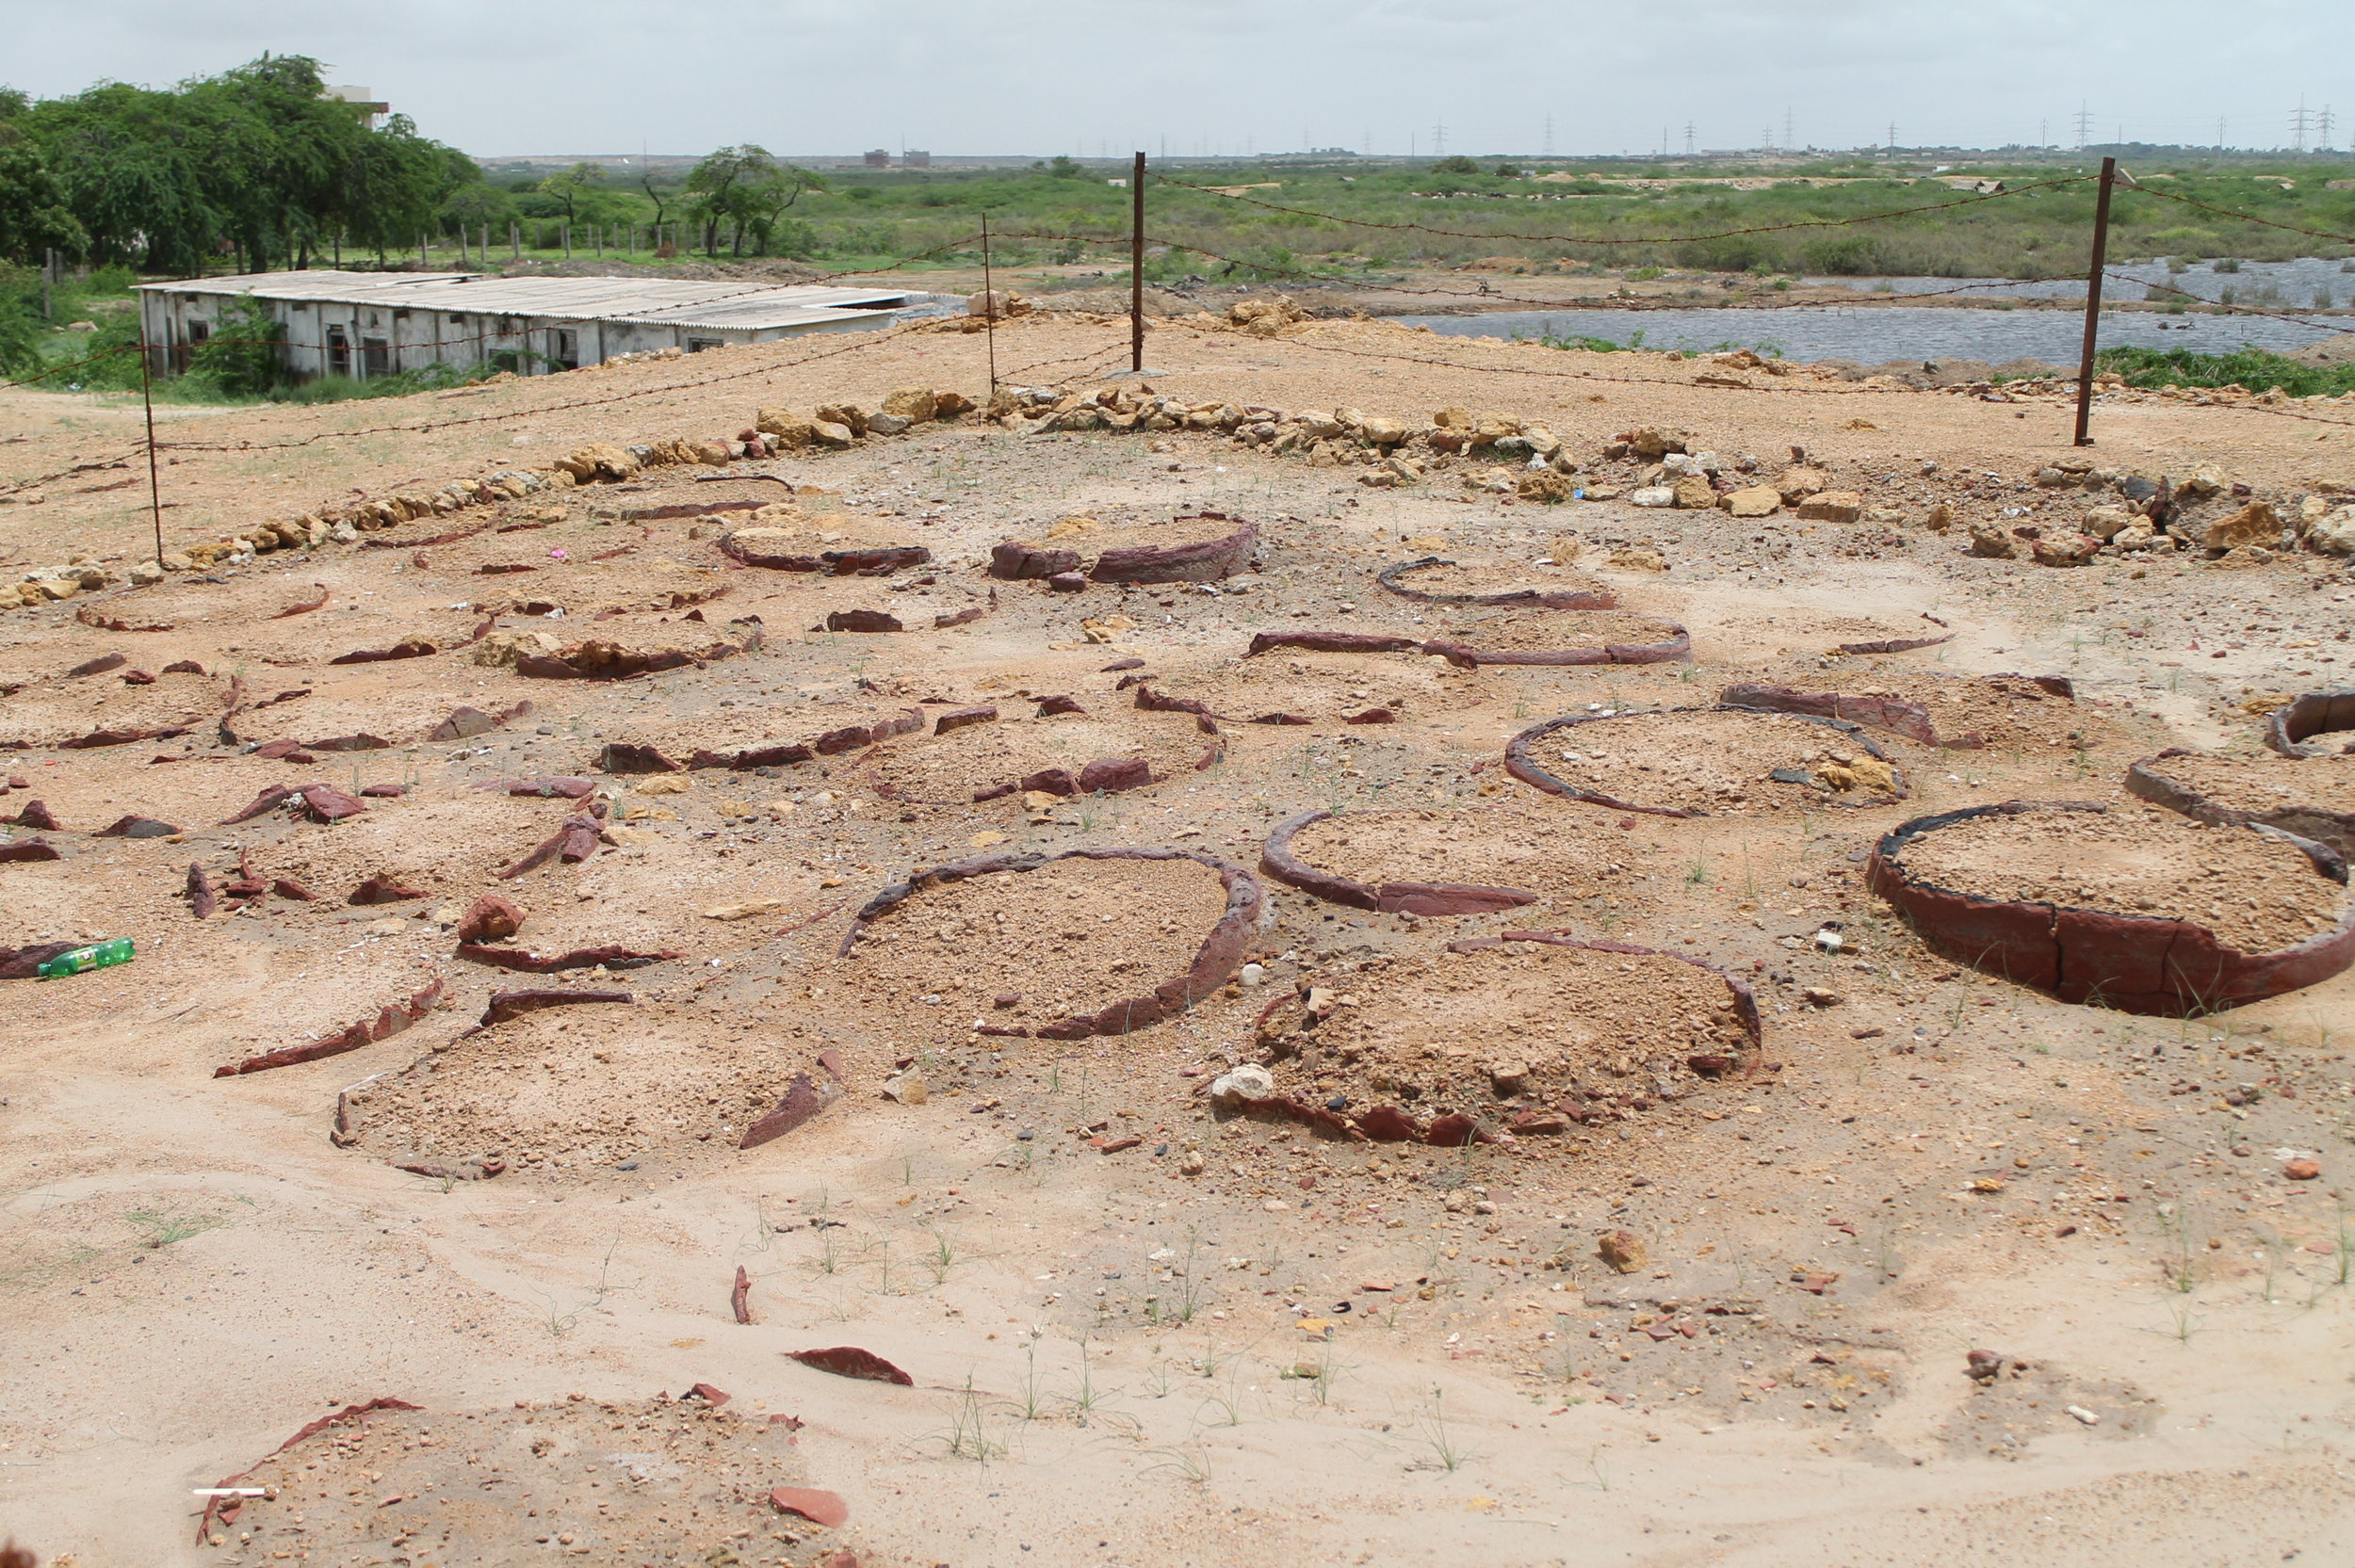 Archaeological remains of the wells where dhobis washed clothes in Bhambhore